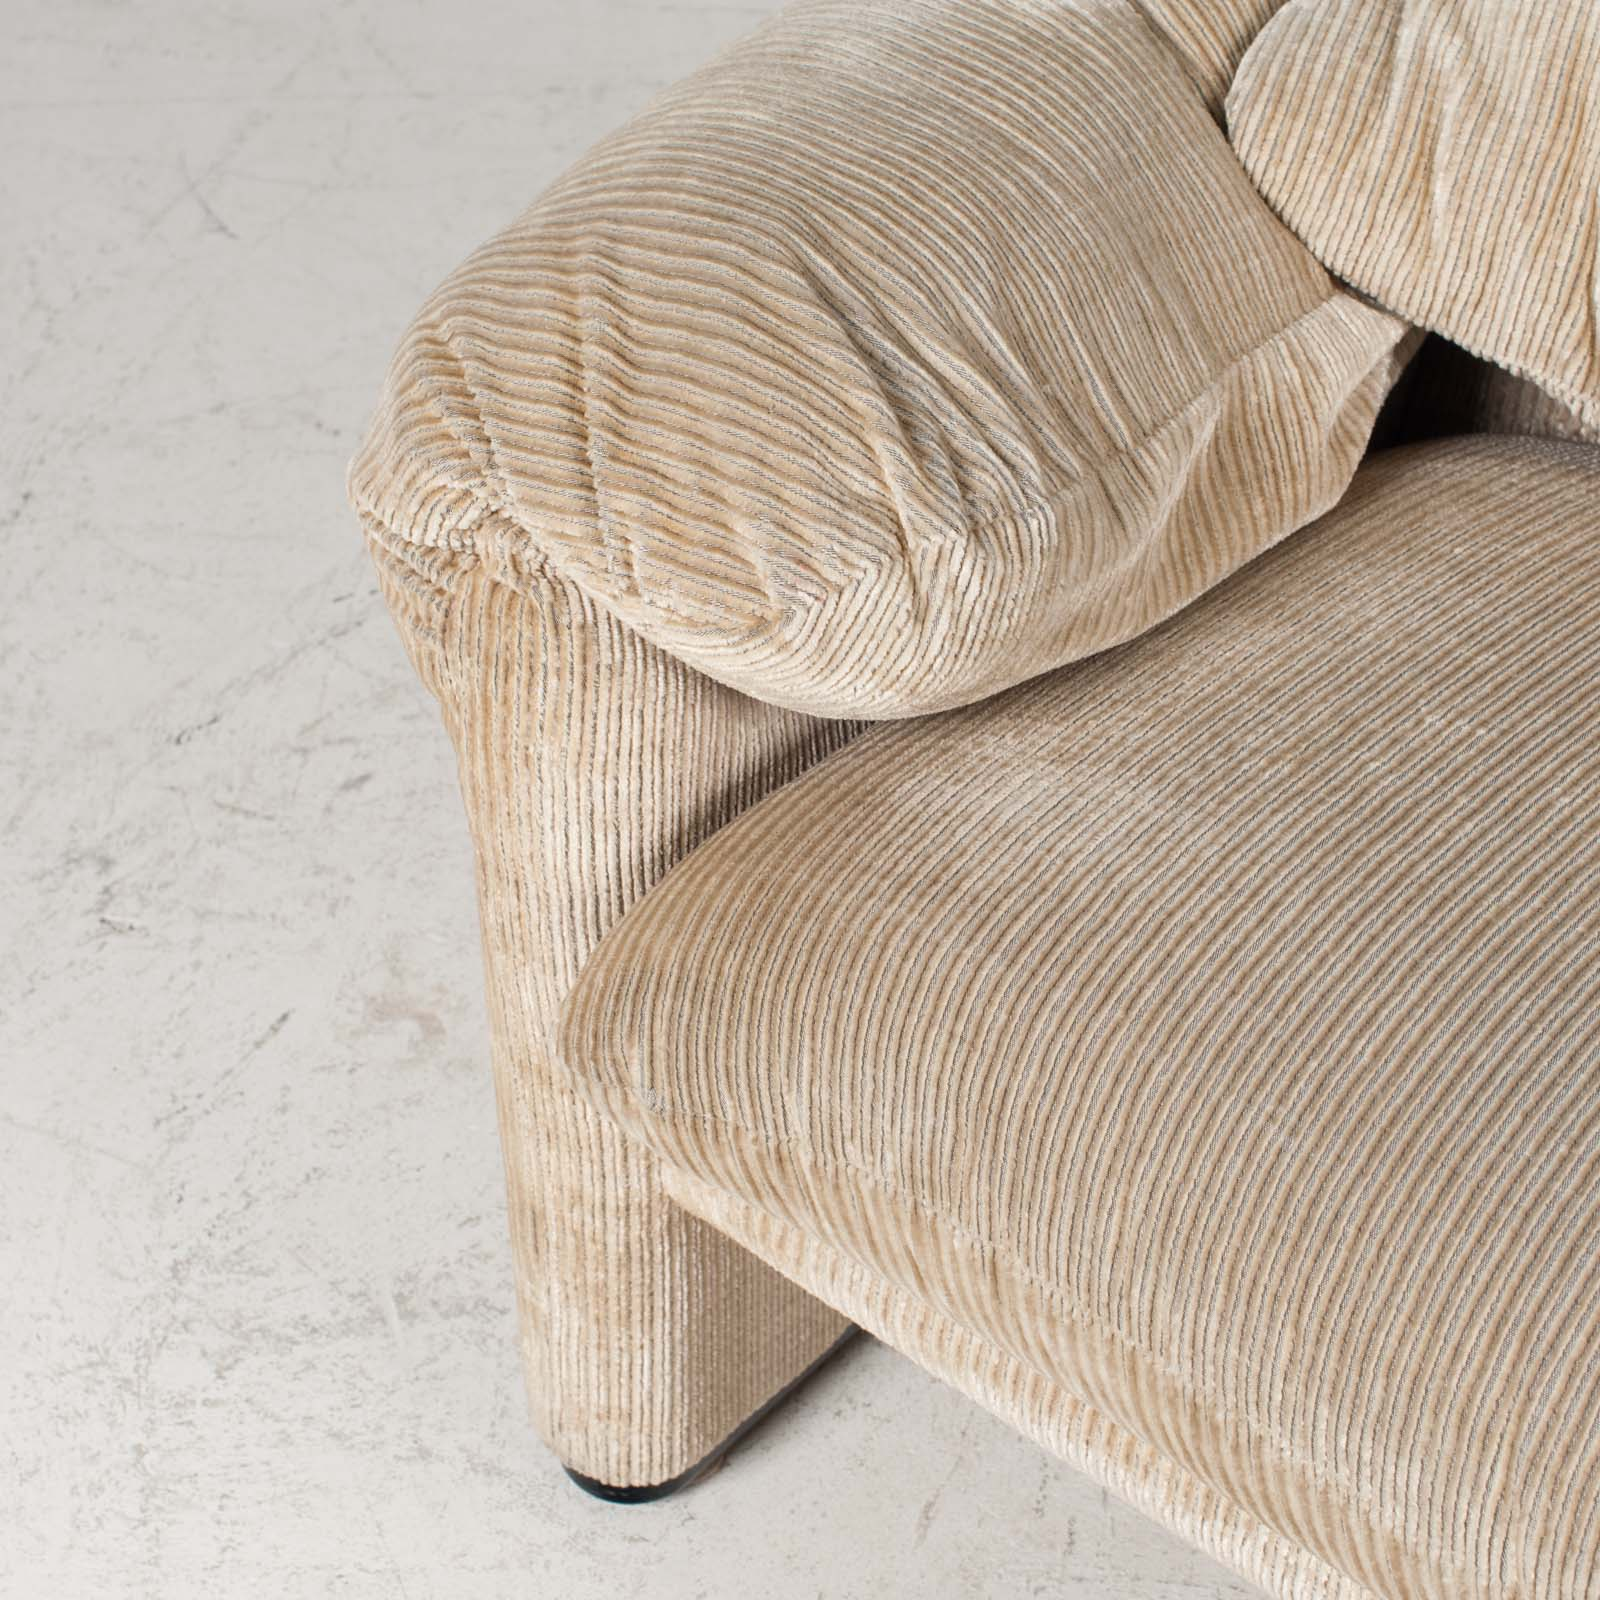 Maralunga Armchair By Vico Magistretti For Cassina In Original Upholstery 1970s Italy 06